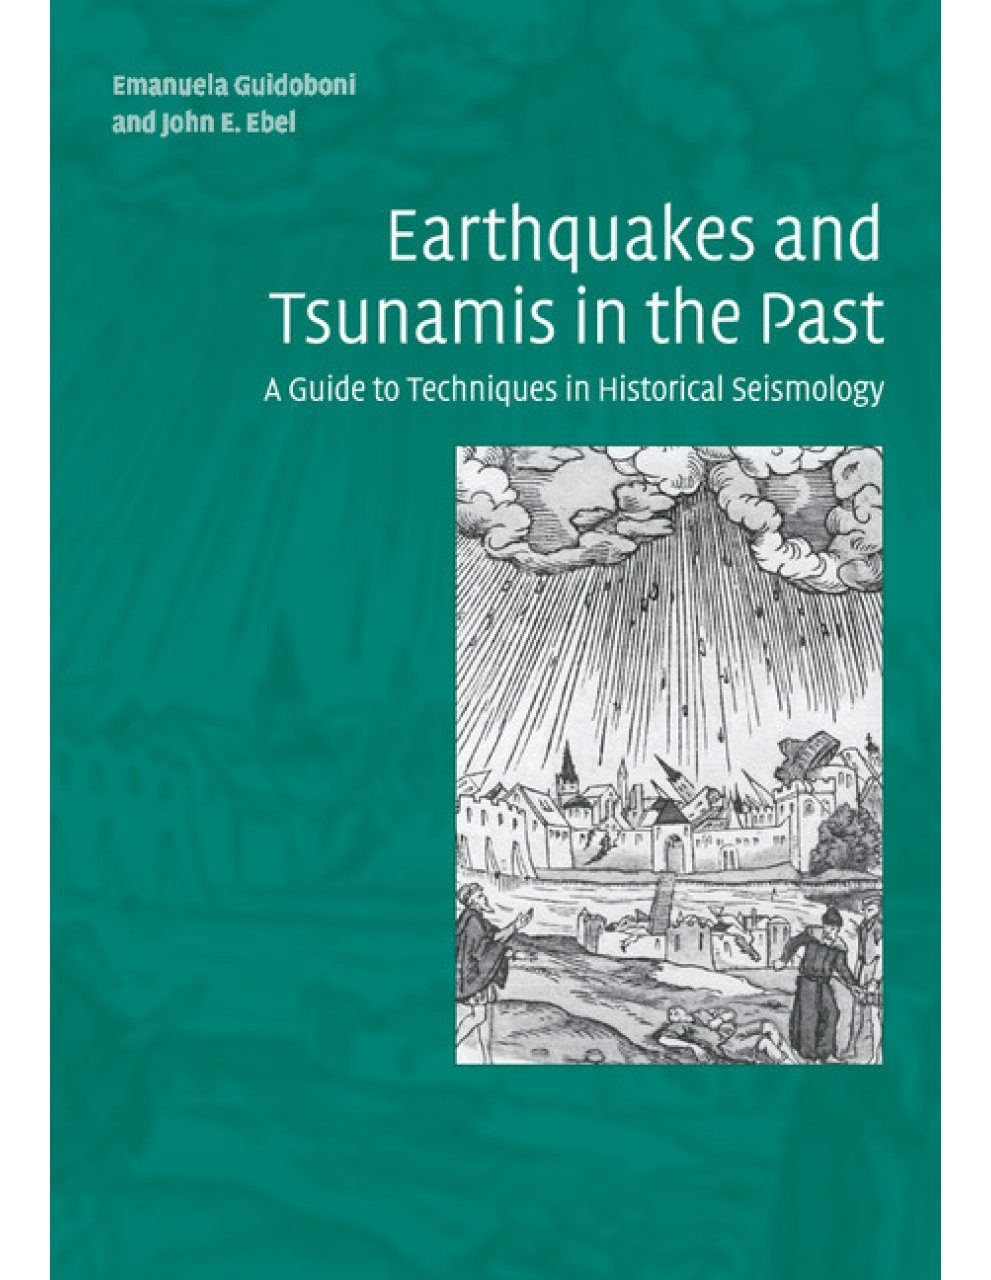 Earthquakes and Tsunamis in the Past